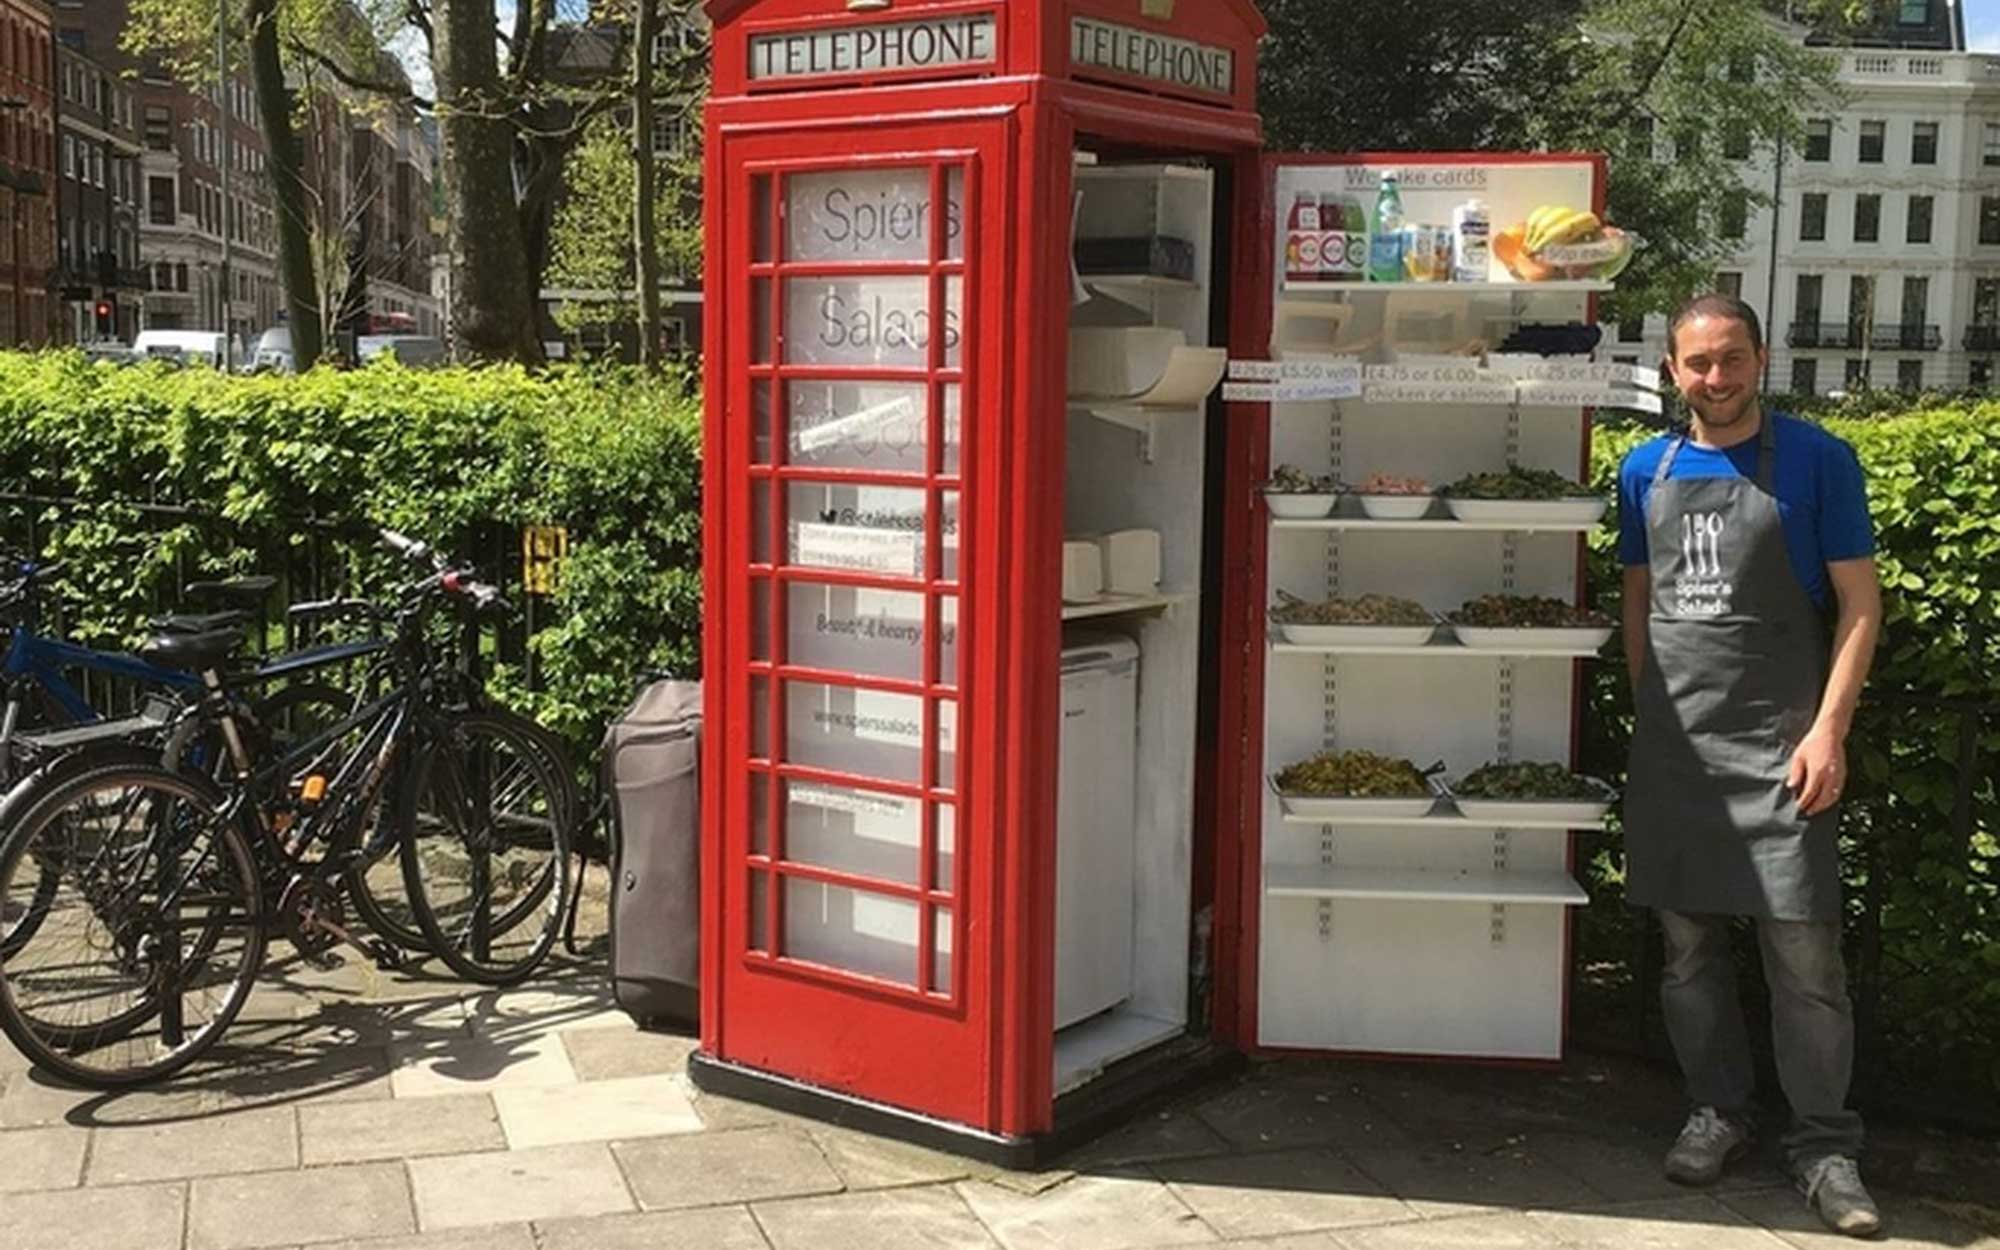 Man Opens Salad Bar in a London Phone Booth